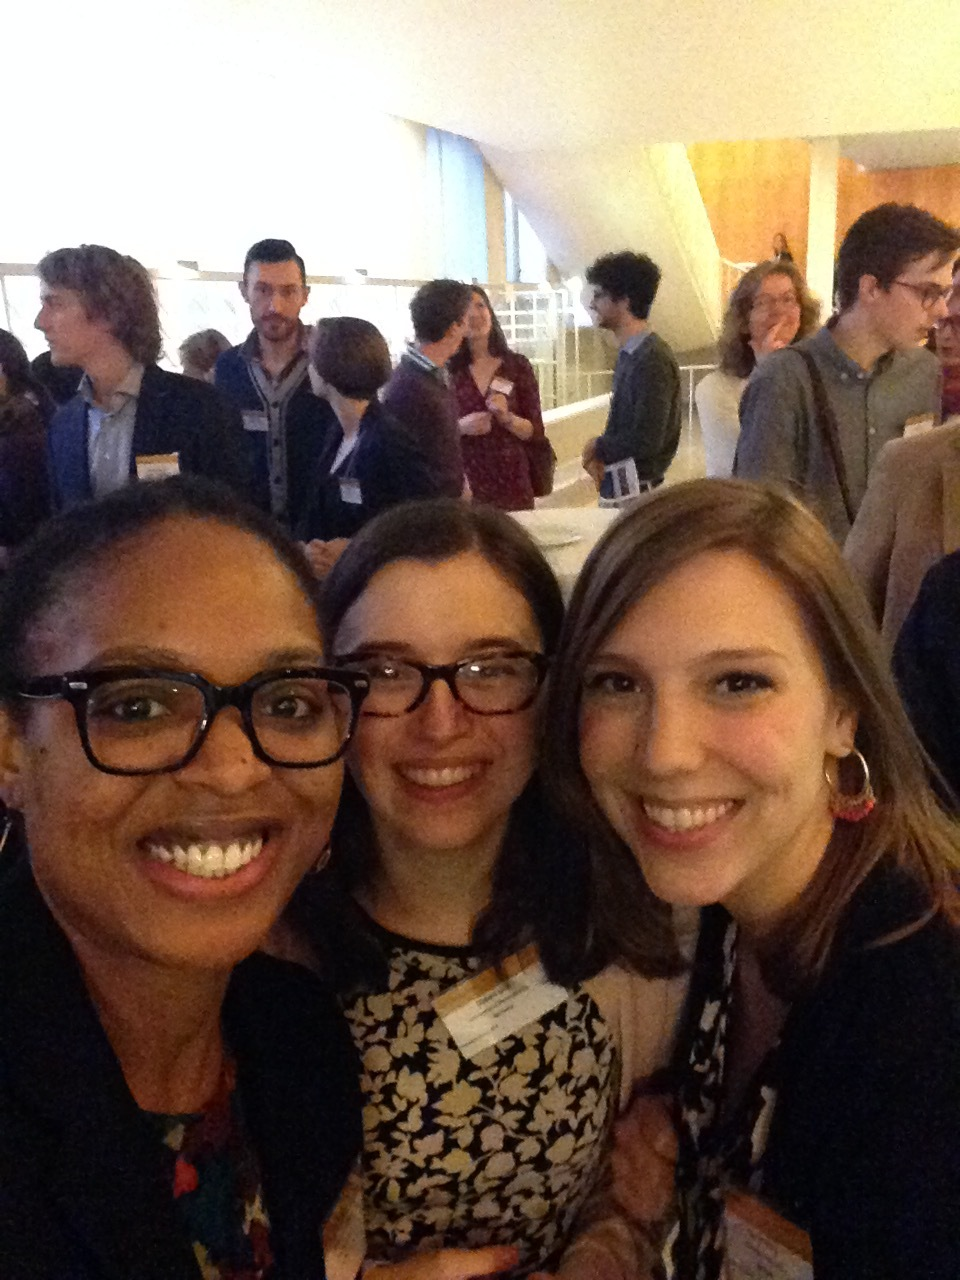 German-American Fulbright Commission Mid-Year Seminar I had a fabulous time reconnecting with Germany Fulbright grantees, Didum (middle) and Lauren (right) and learning about their academic progress and success since our initial in-country orientation in Marburg in September 2016. What an incredible year it has been!